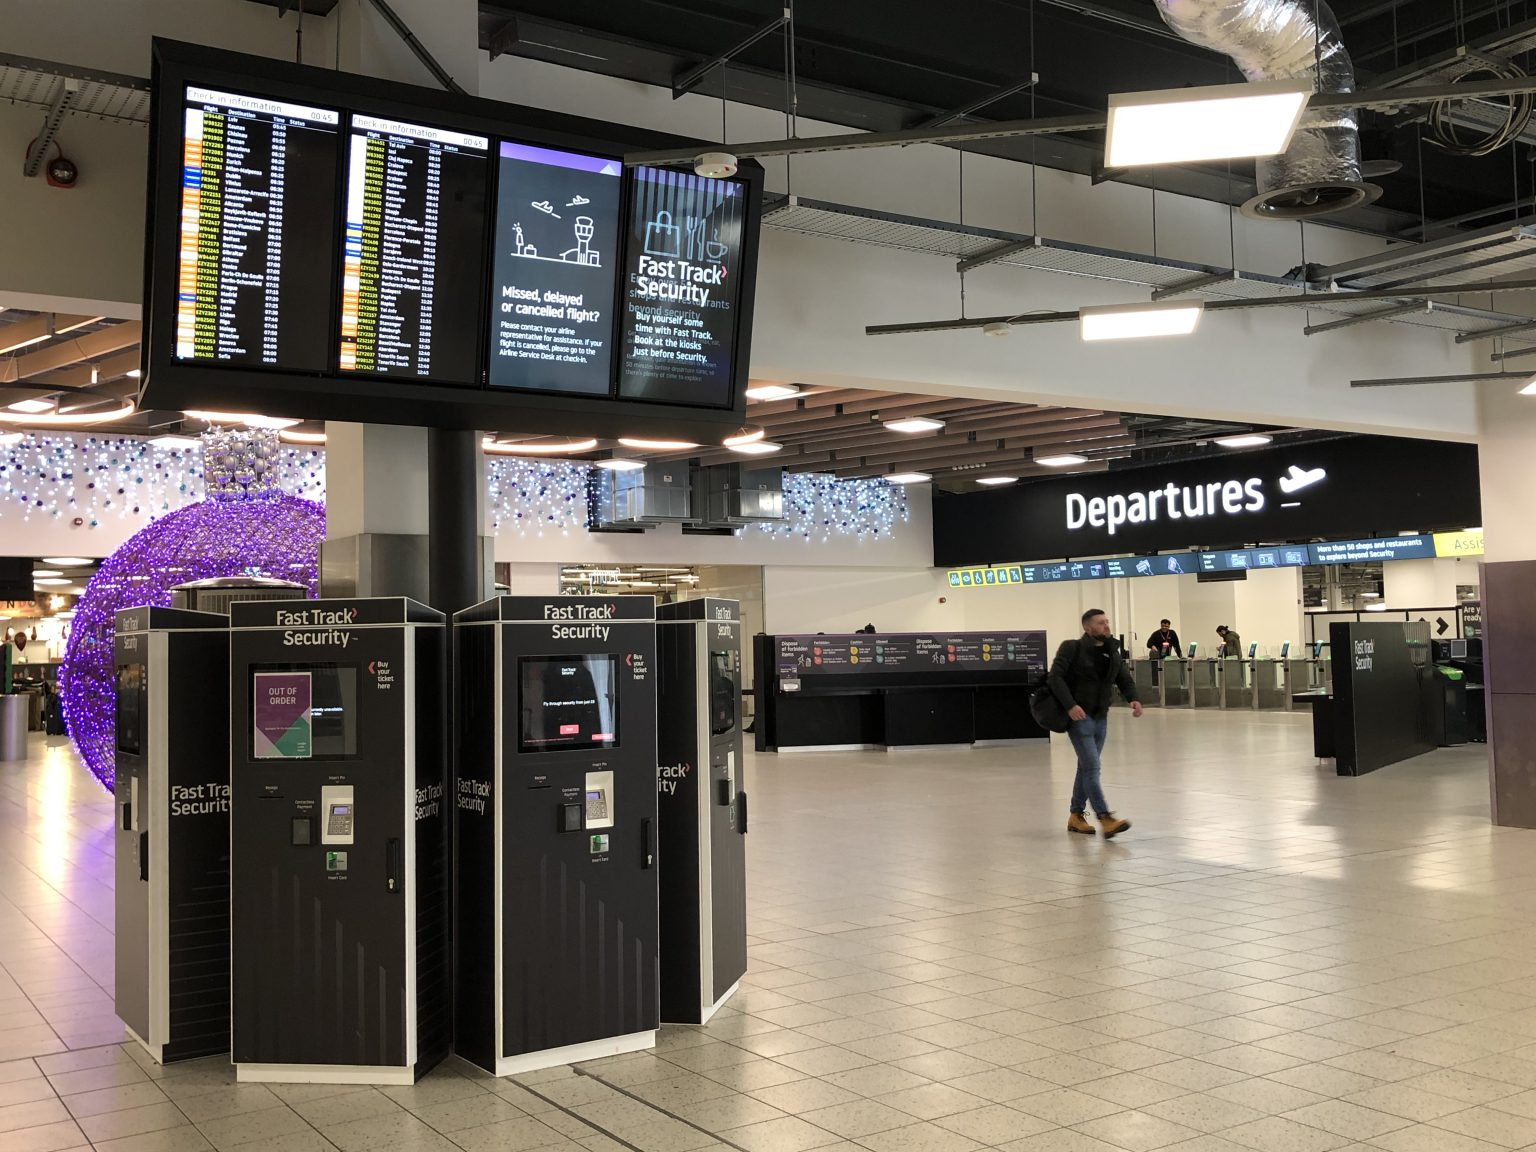 Flight and passenger information screens and ultrawide displays with digital signage